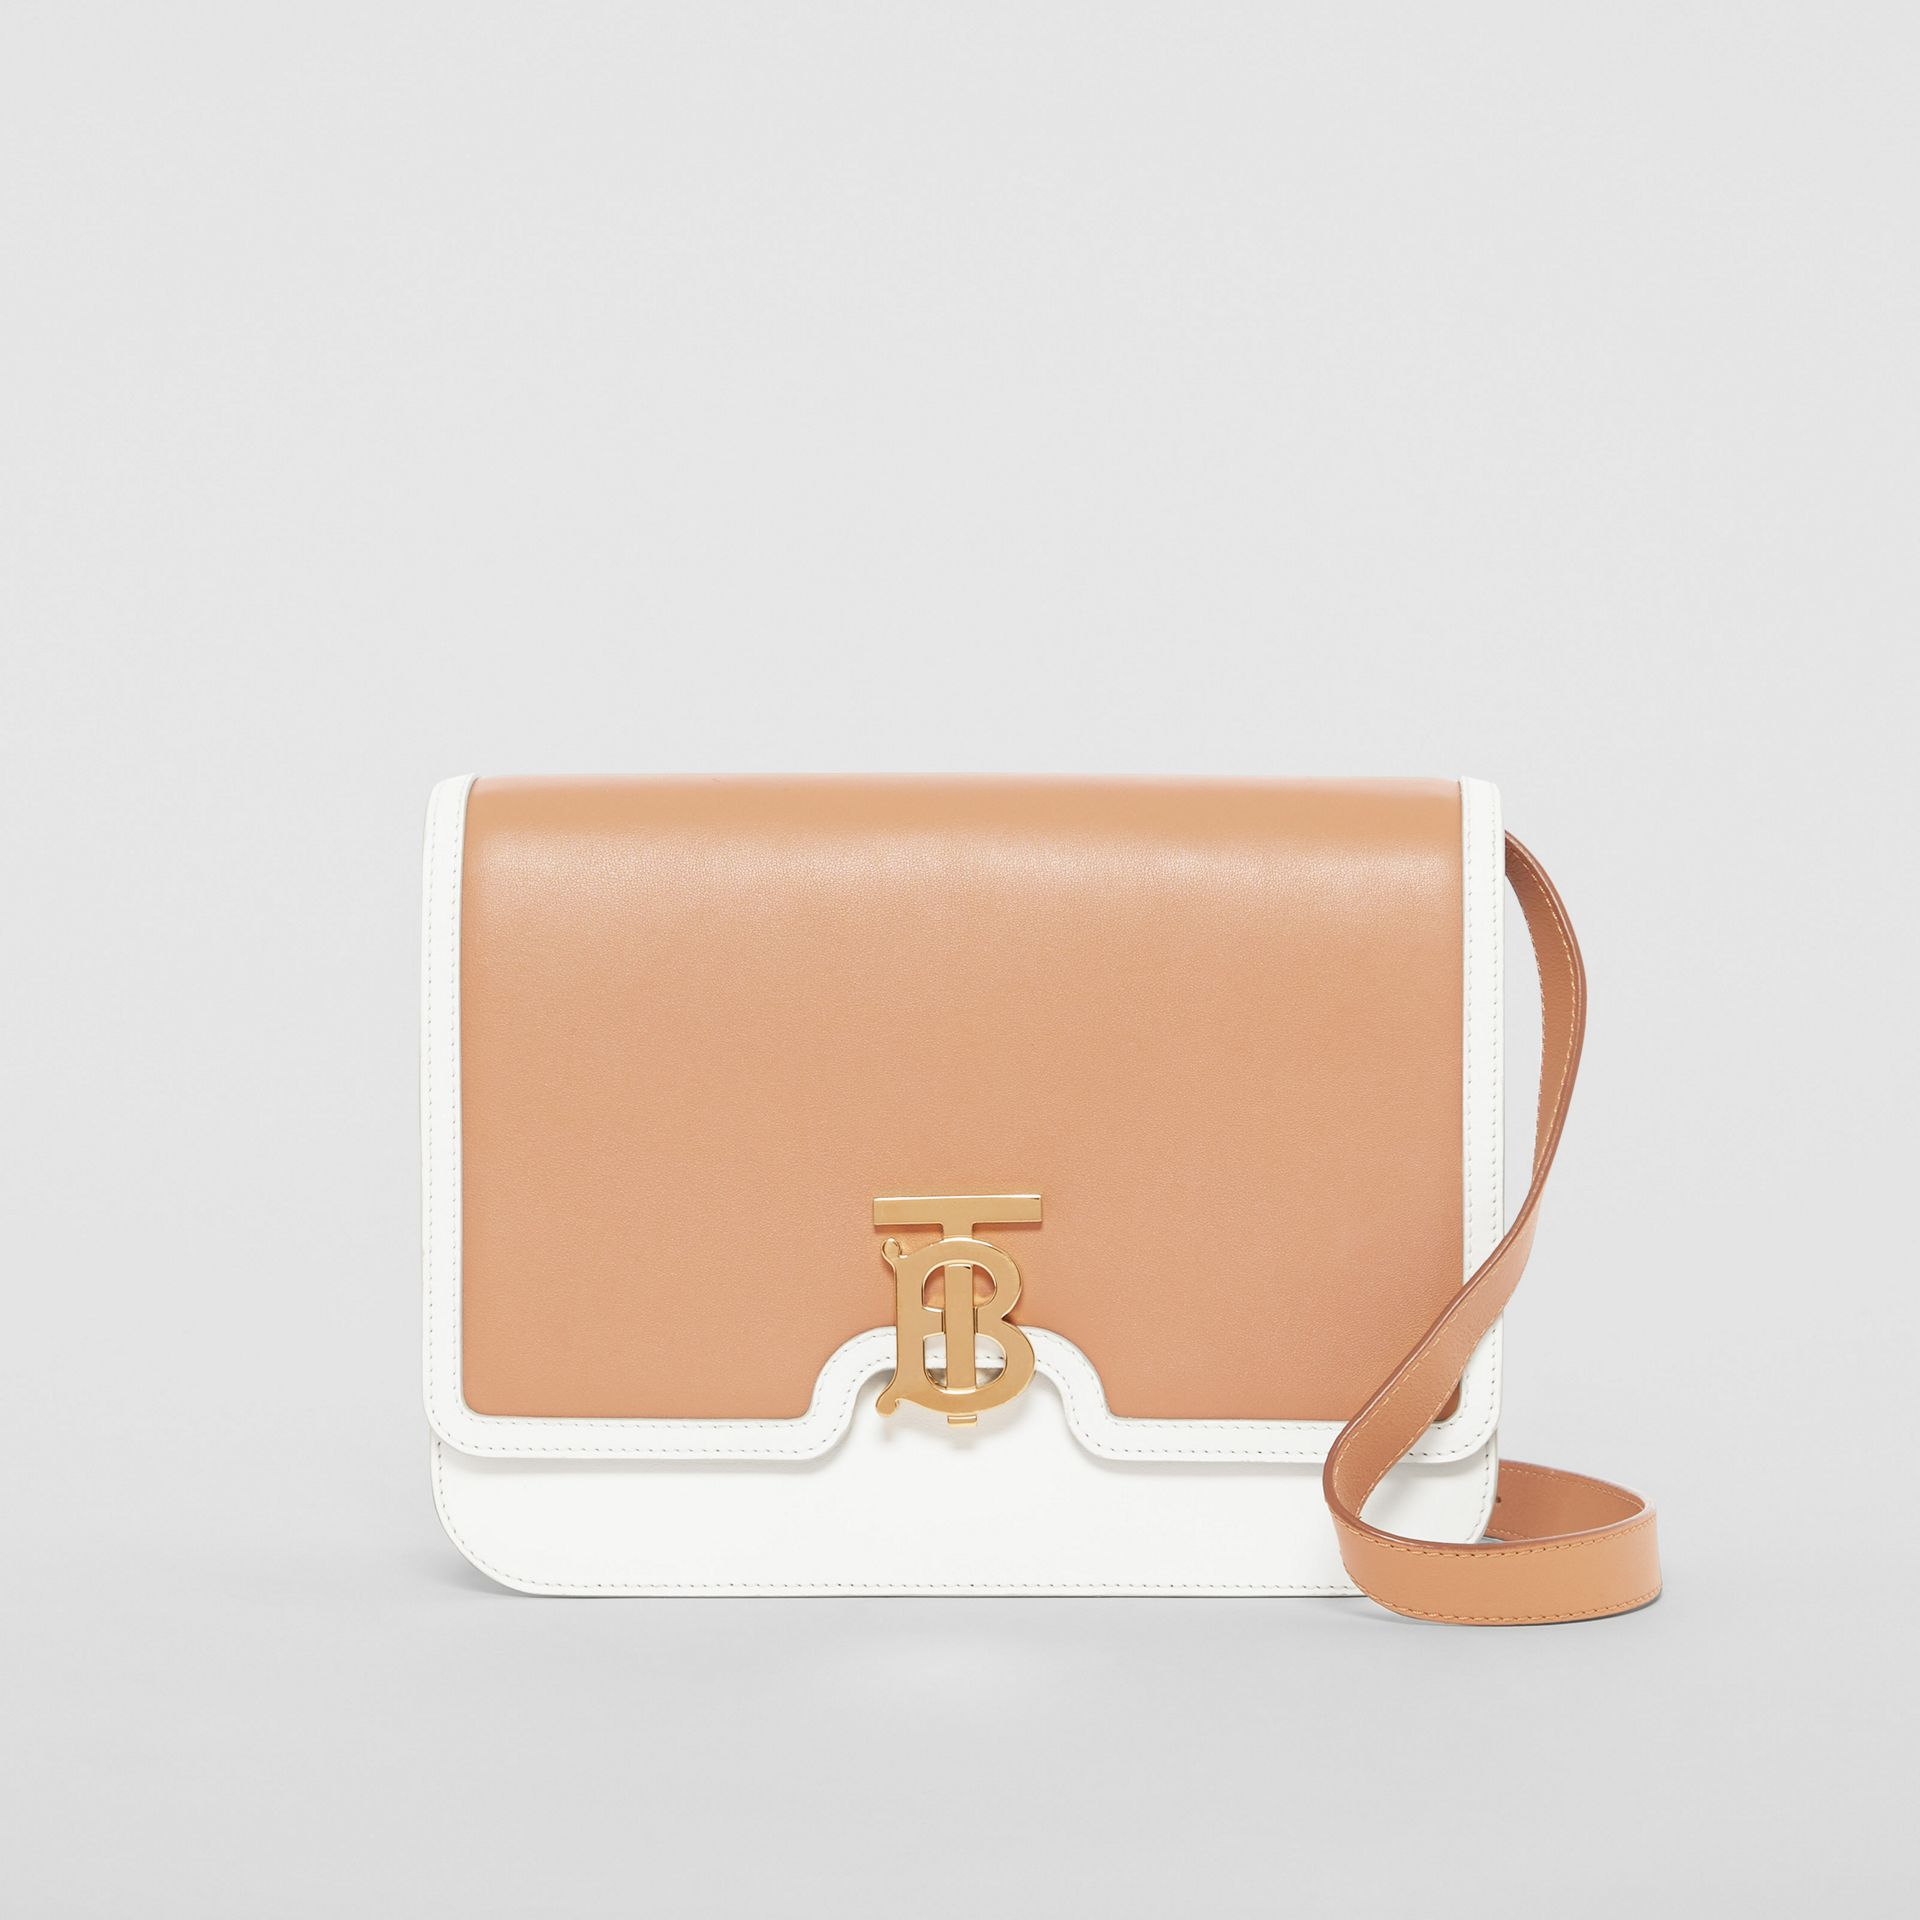 Medium Two-tone Leather TB Bag in Chalk White/light Camel - Women | Burberry United States - gallery image 0